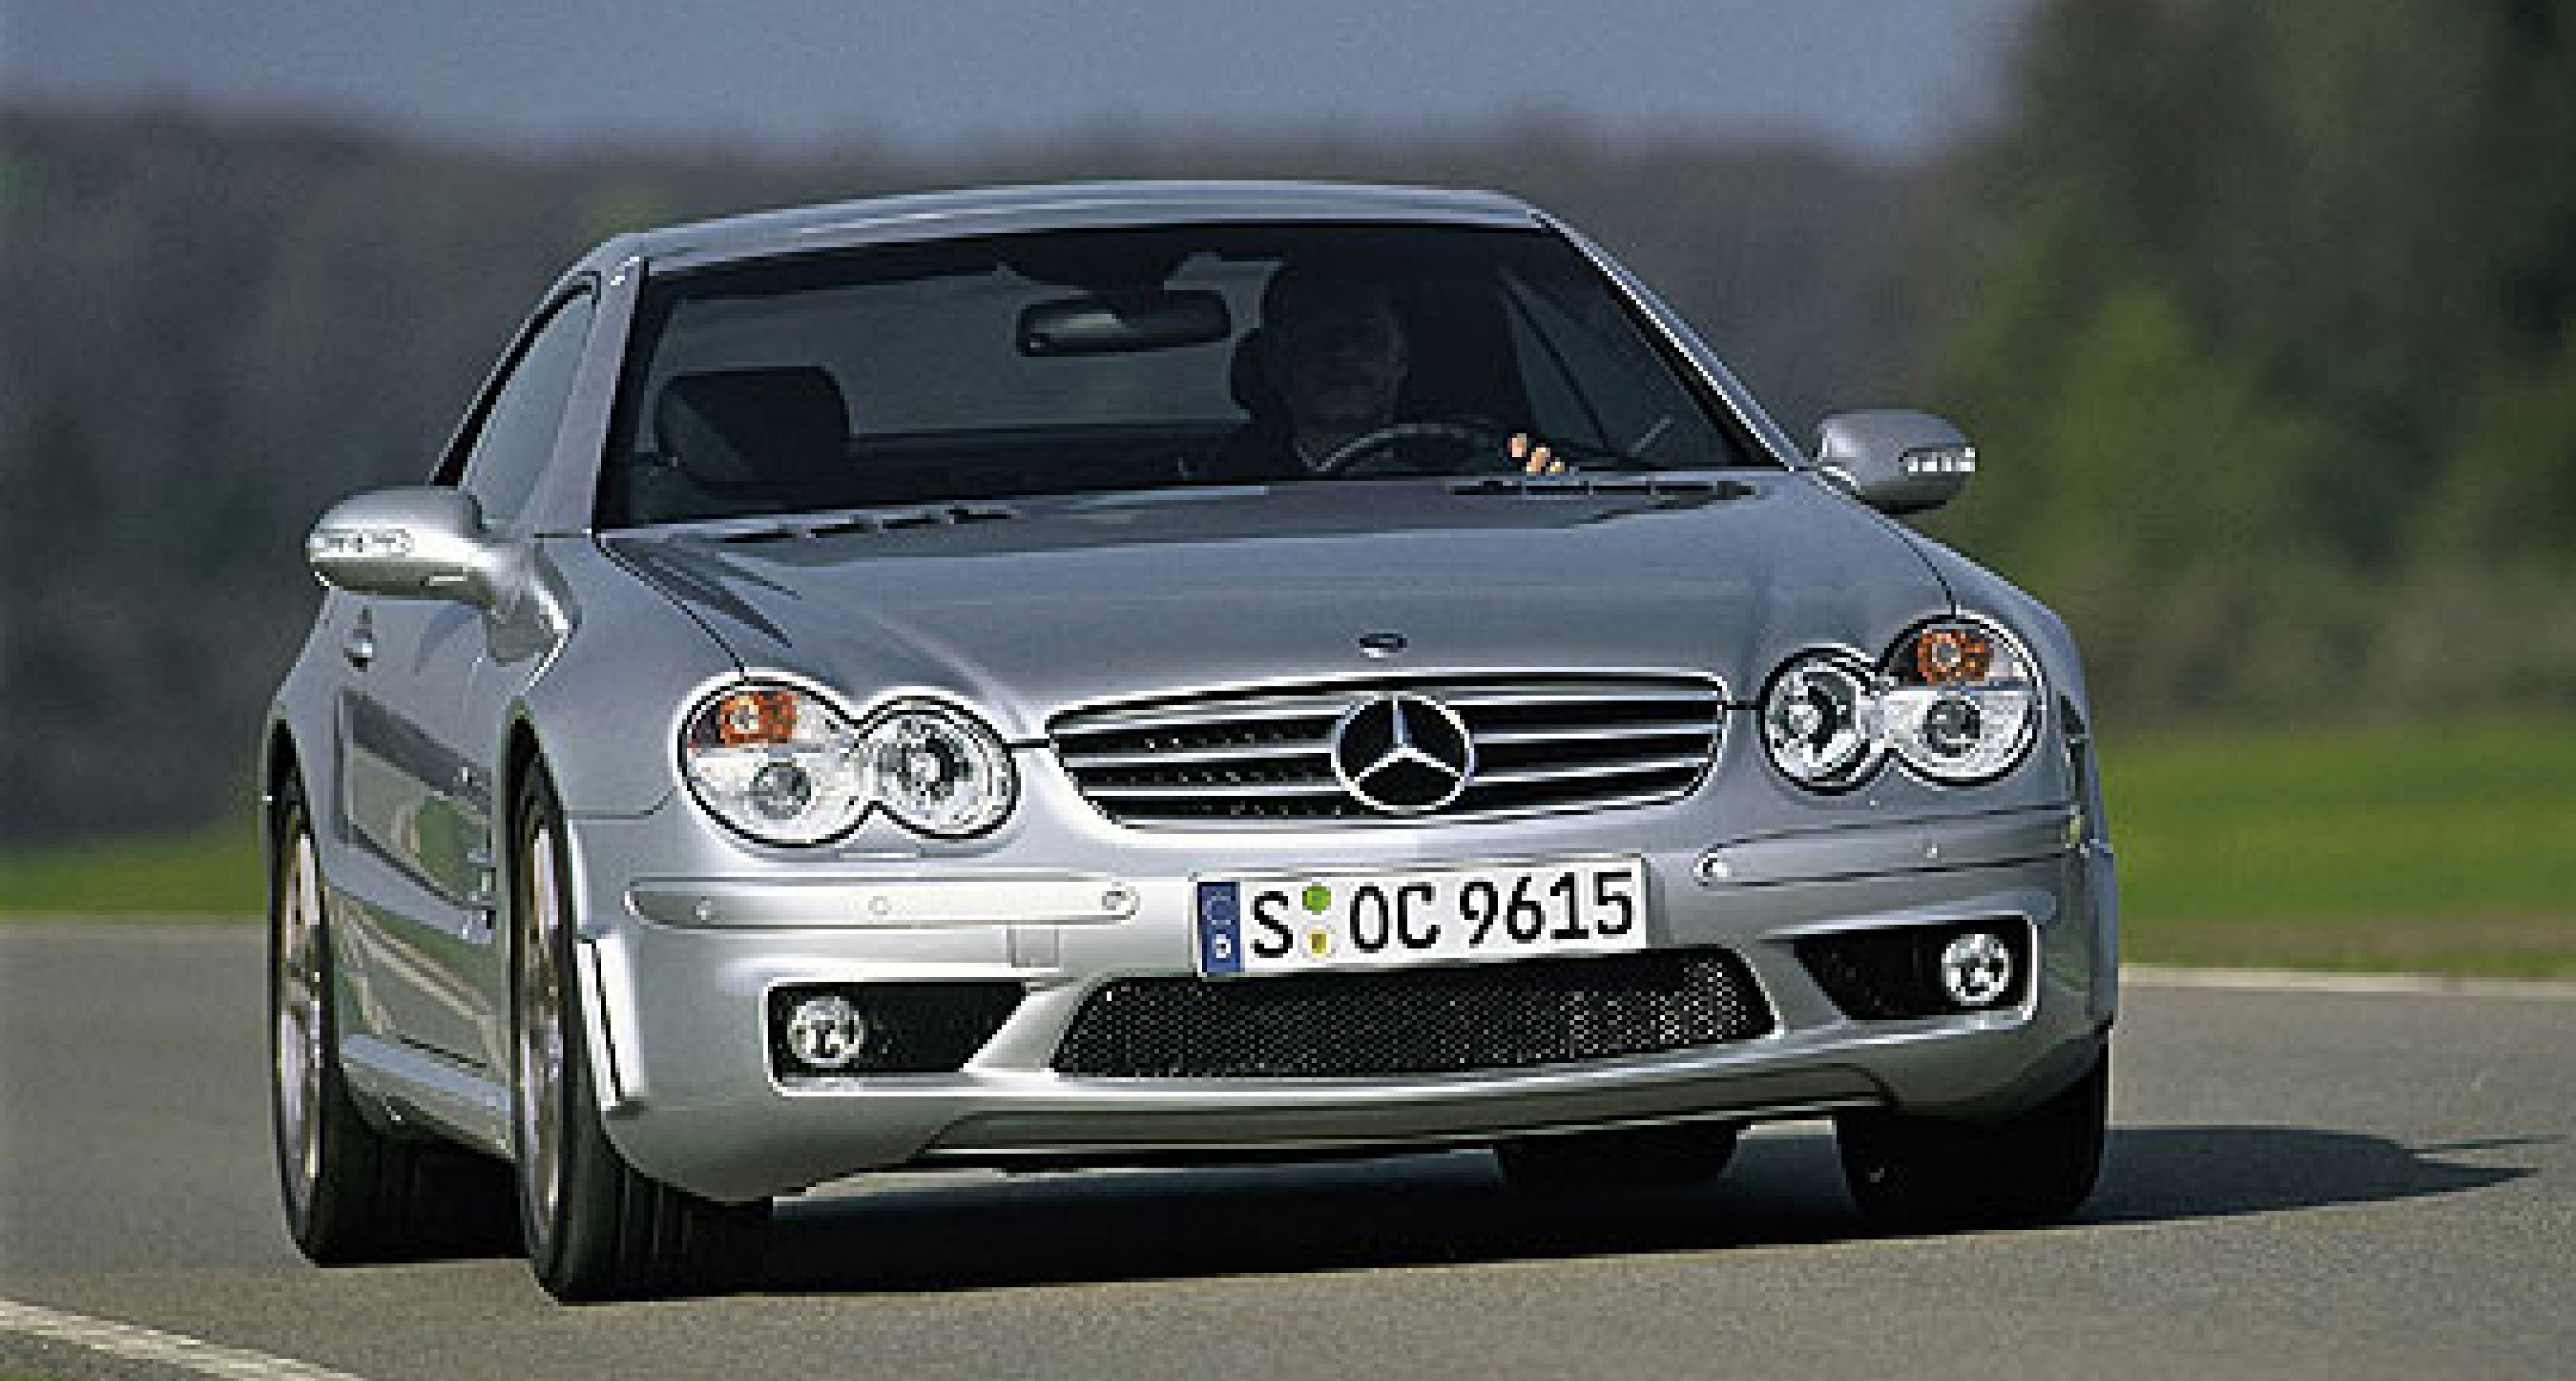 Mercedes-Benz SL 65 AMG: the most powerful roadster in the world